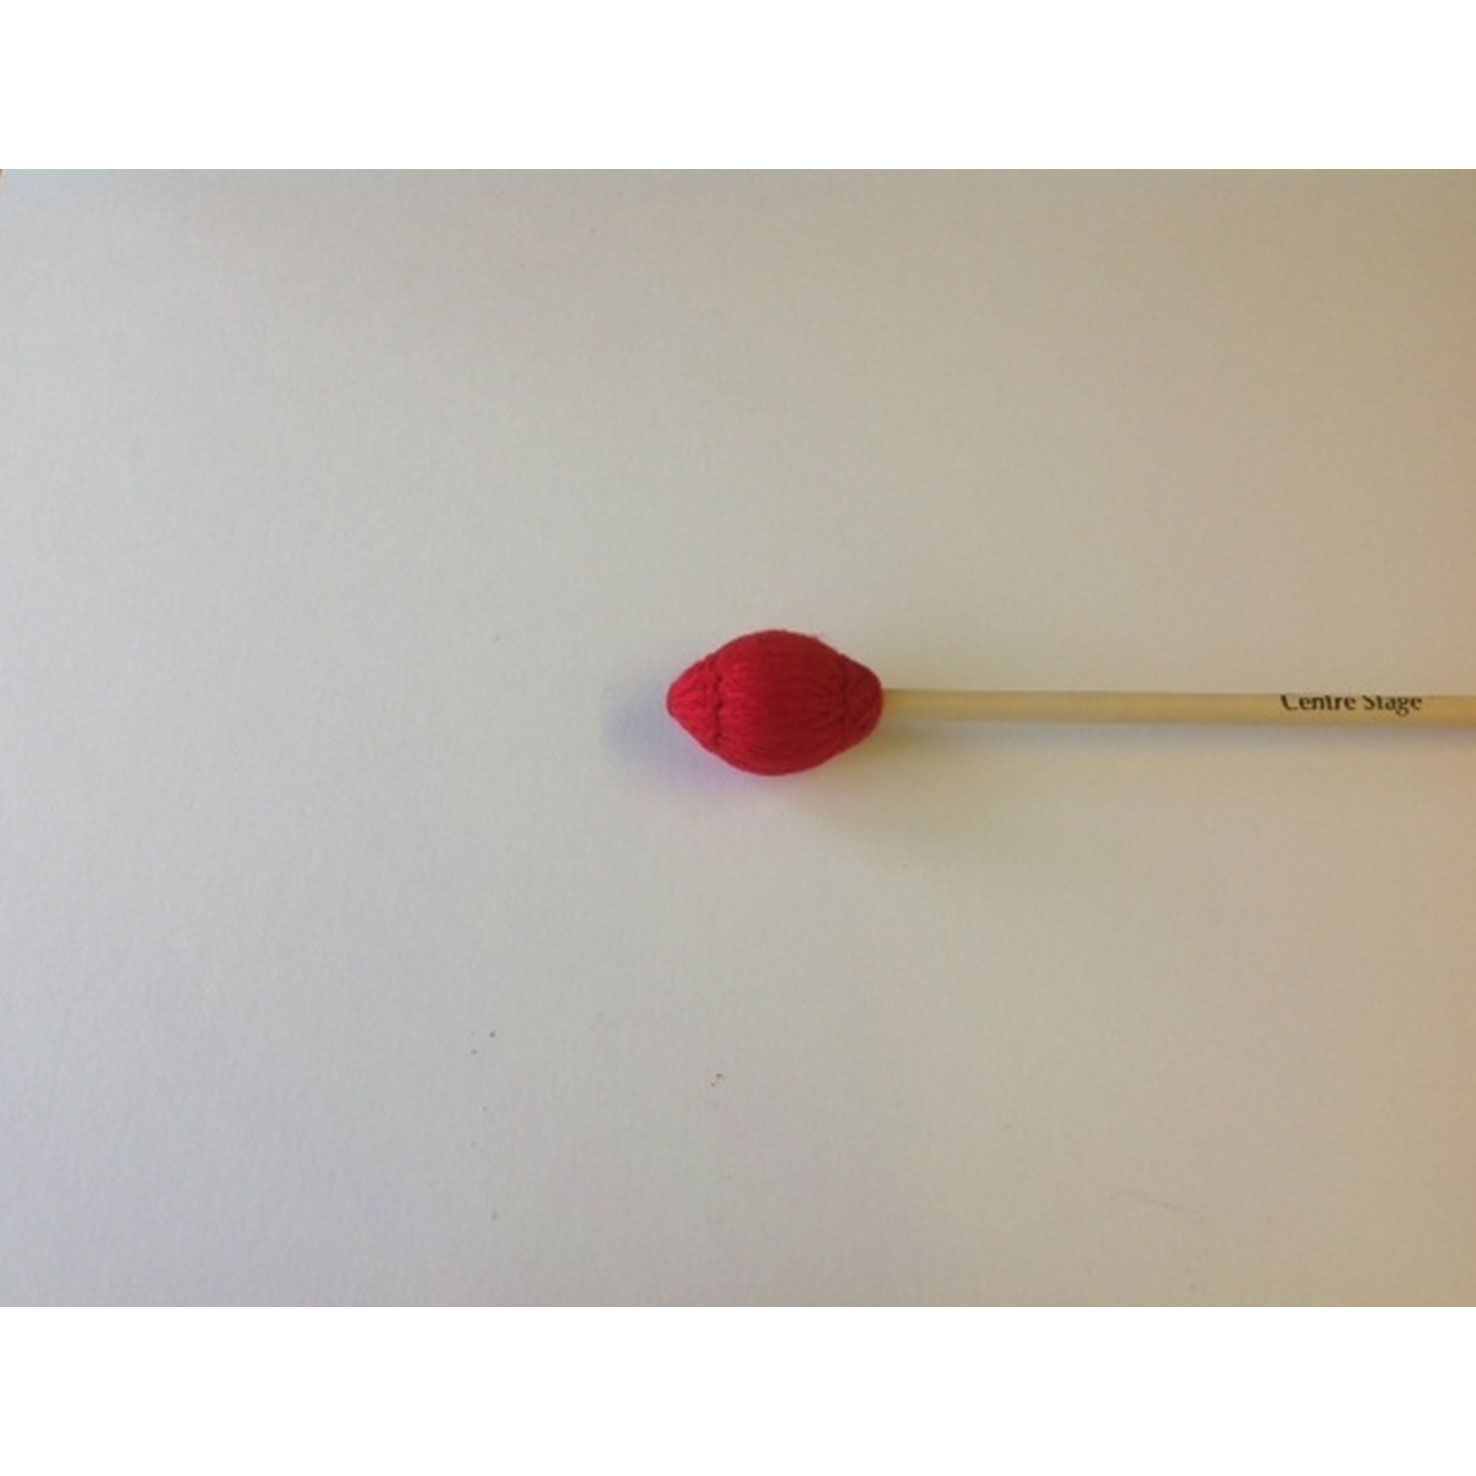 Marimba - Medium Hard Mallets (Maple Handles)